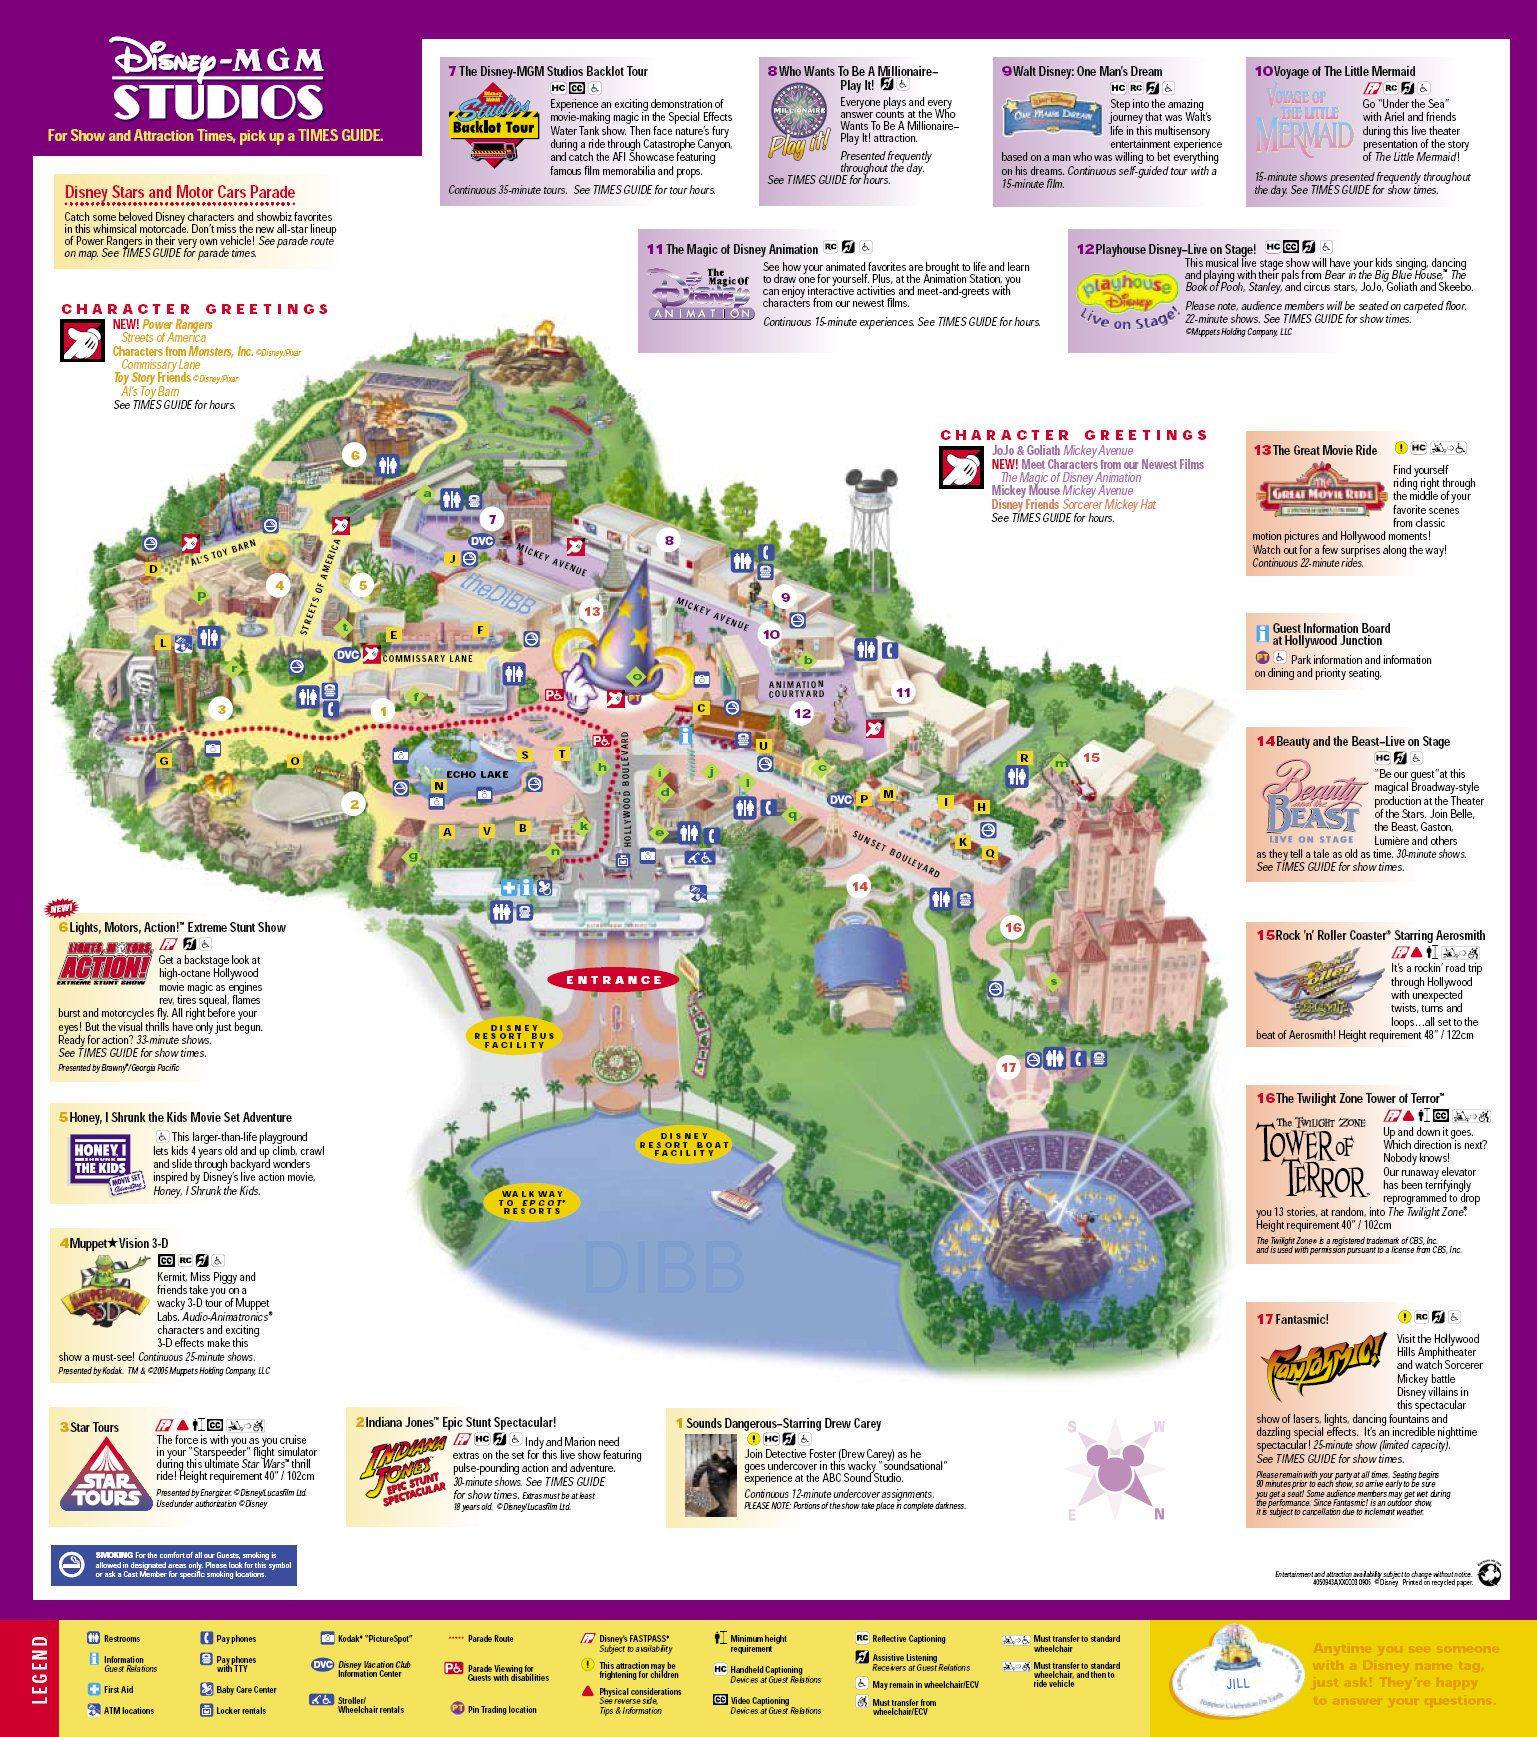 Hollywood Studios map - Disney | Disney | Disney world hollywood ...